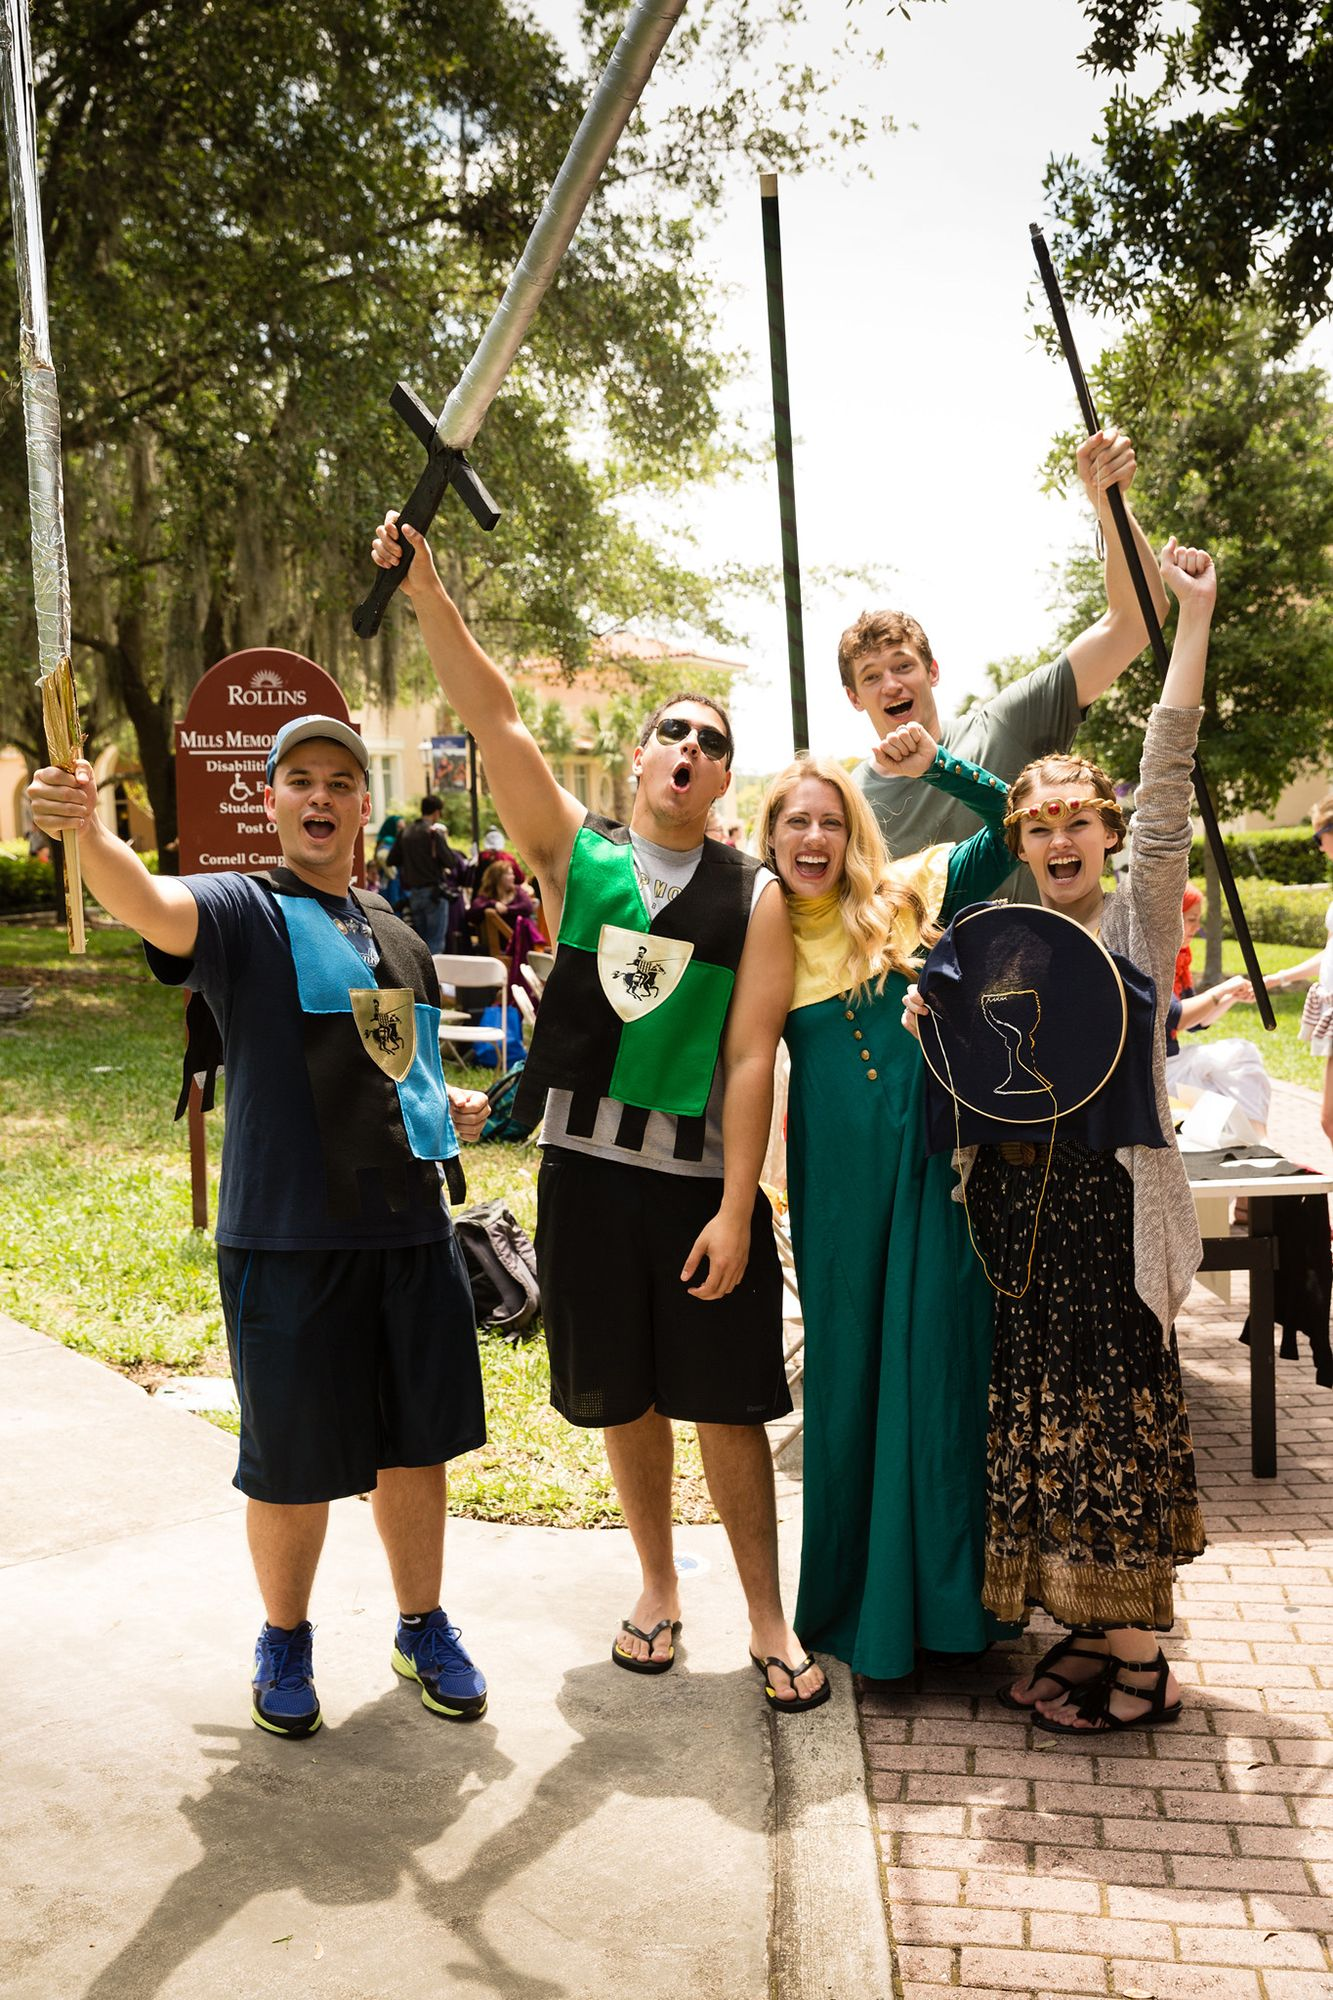 Professor, Jana Matthew, and students dressed in medieval attire holding up their swords and shields.